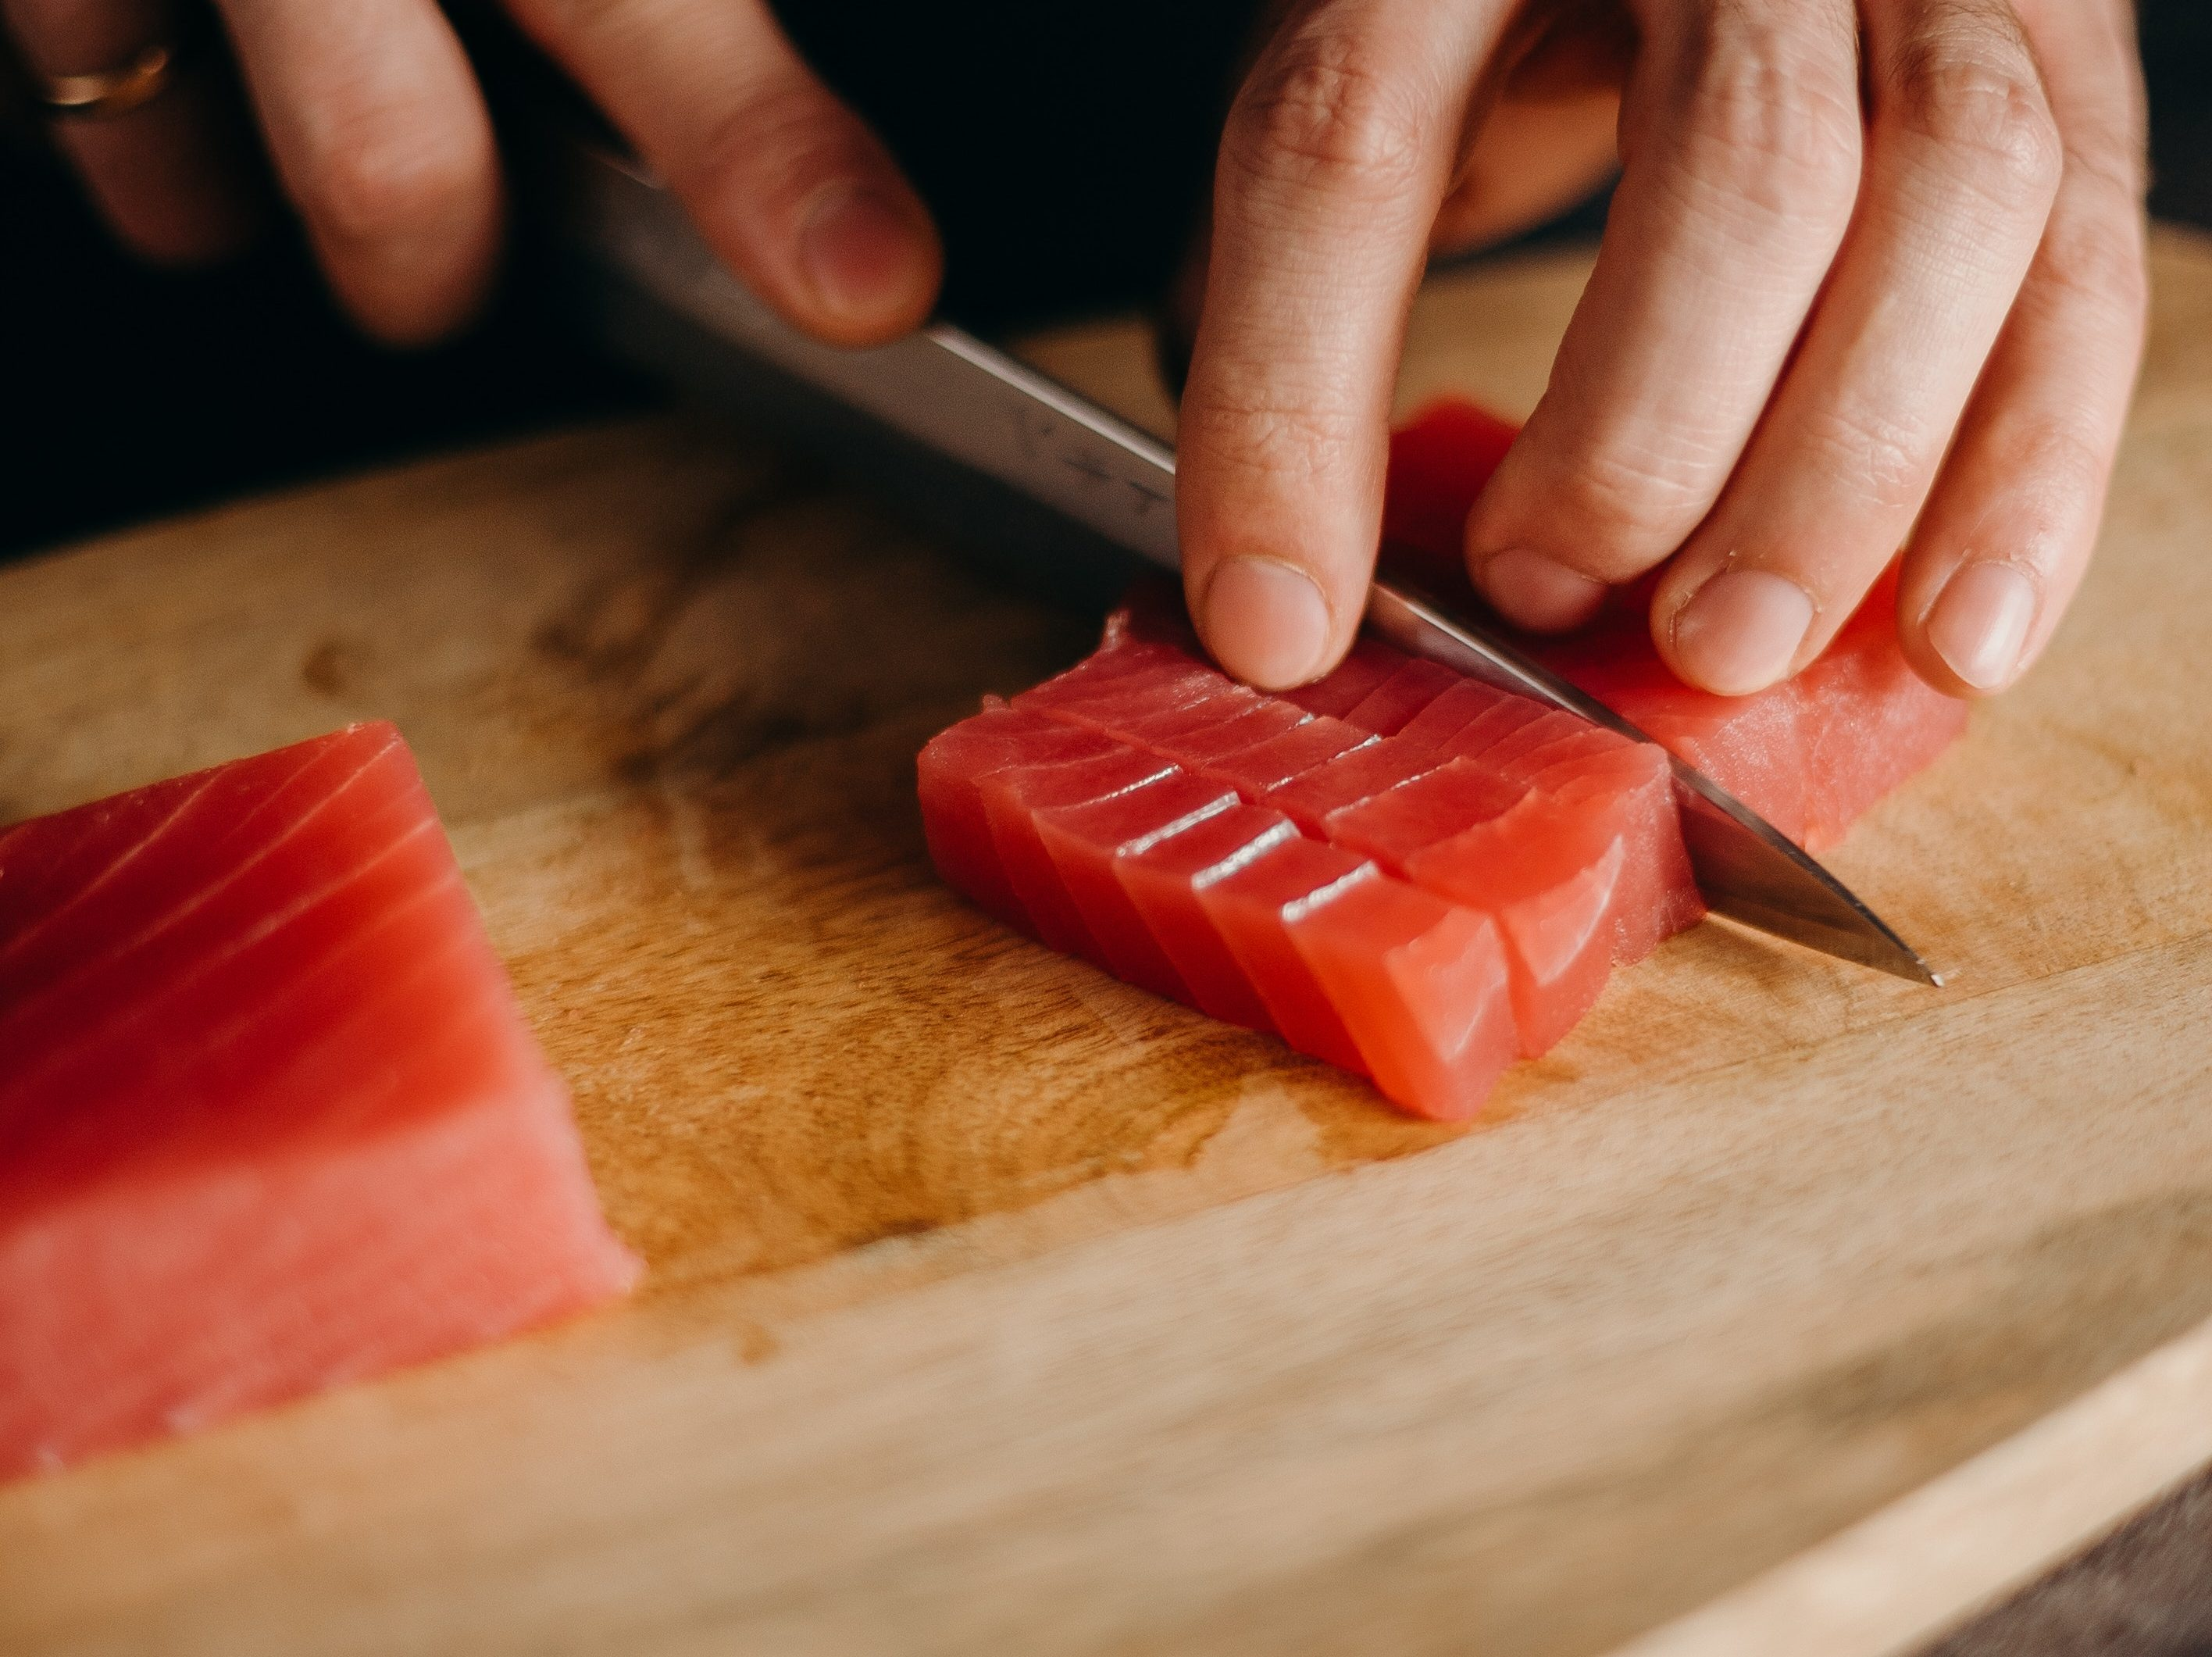 An image of a man slicing tuna to use it in a sushi recipe.